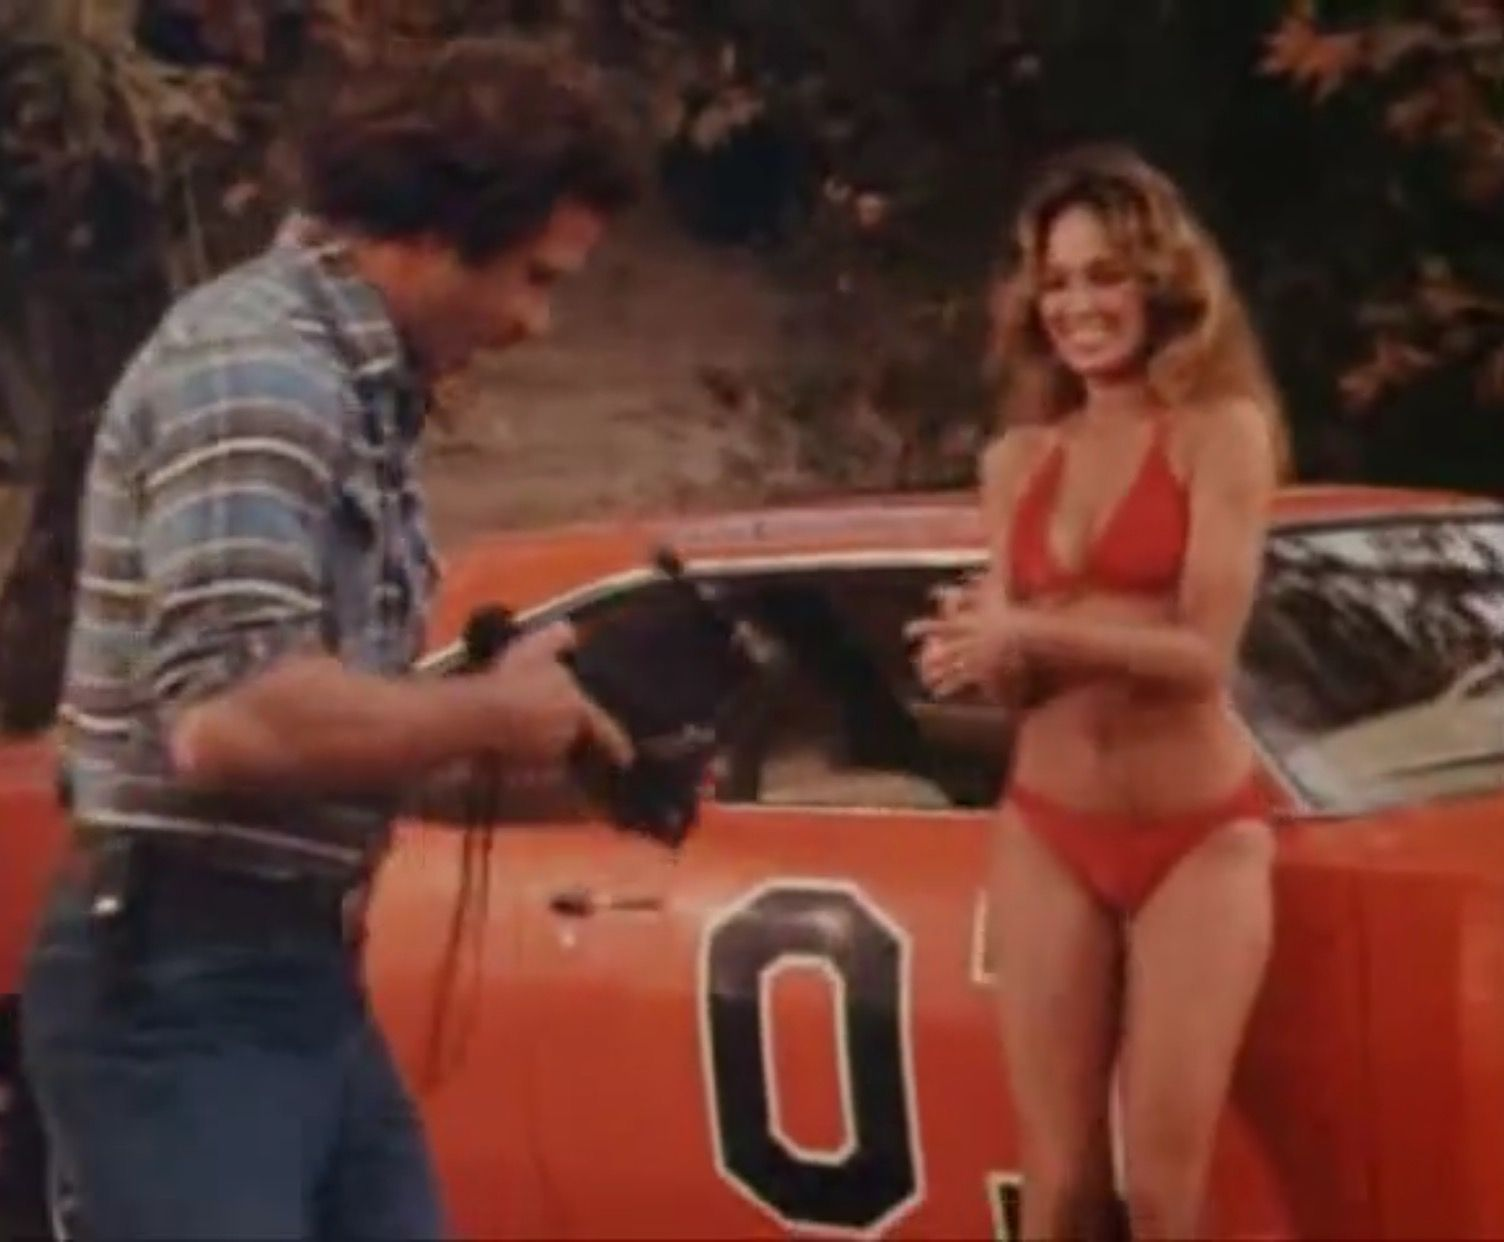 For that Girl on dukes of hazzard there